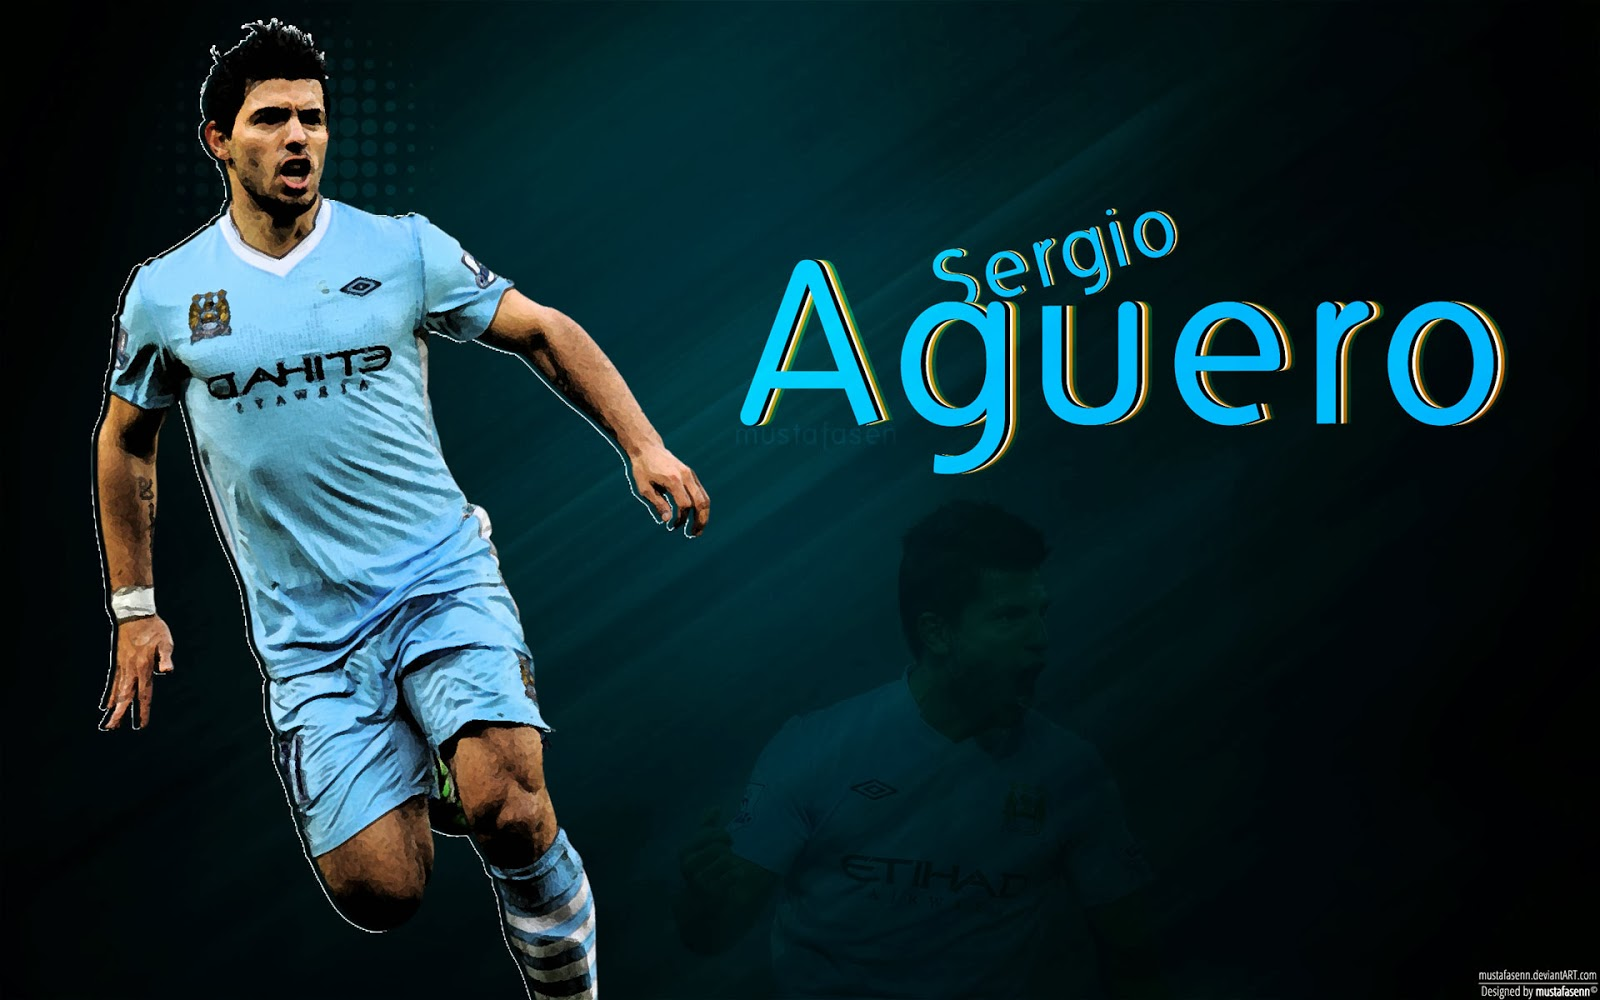 Sergio Aguero HD Wallpaper